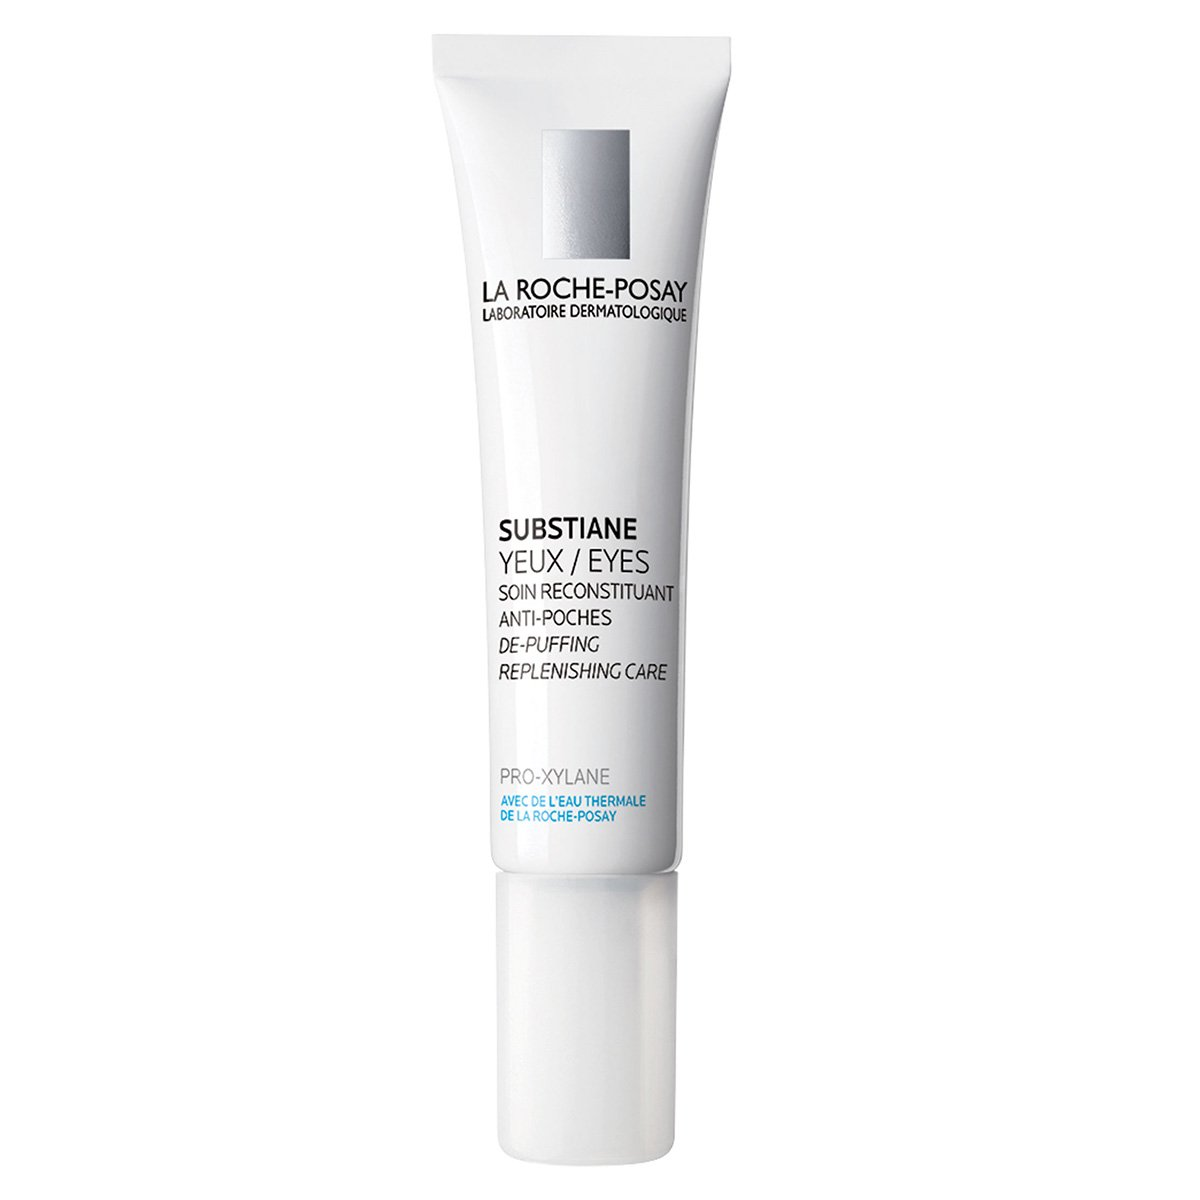 La Roche-Posay Substiane Replenishing Eye Cream, 0.5 Fl. Oz.